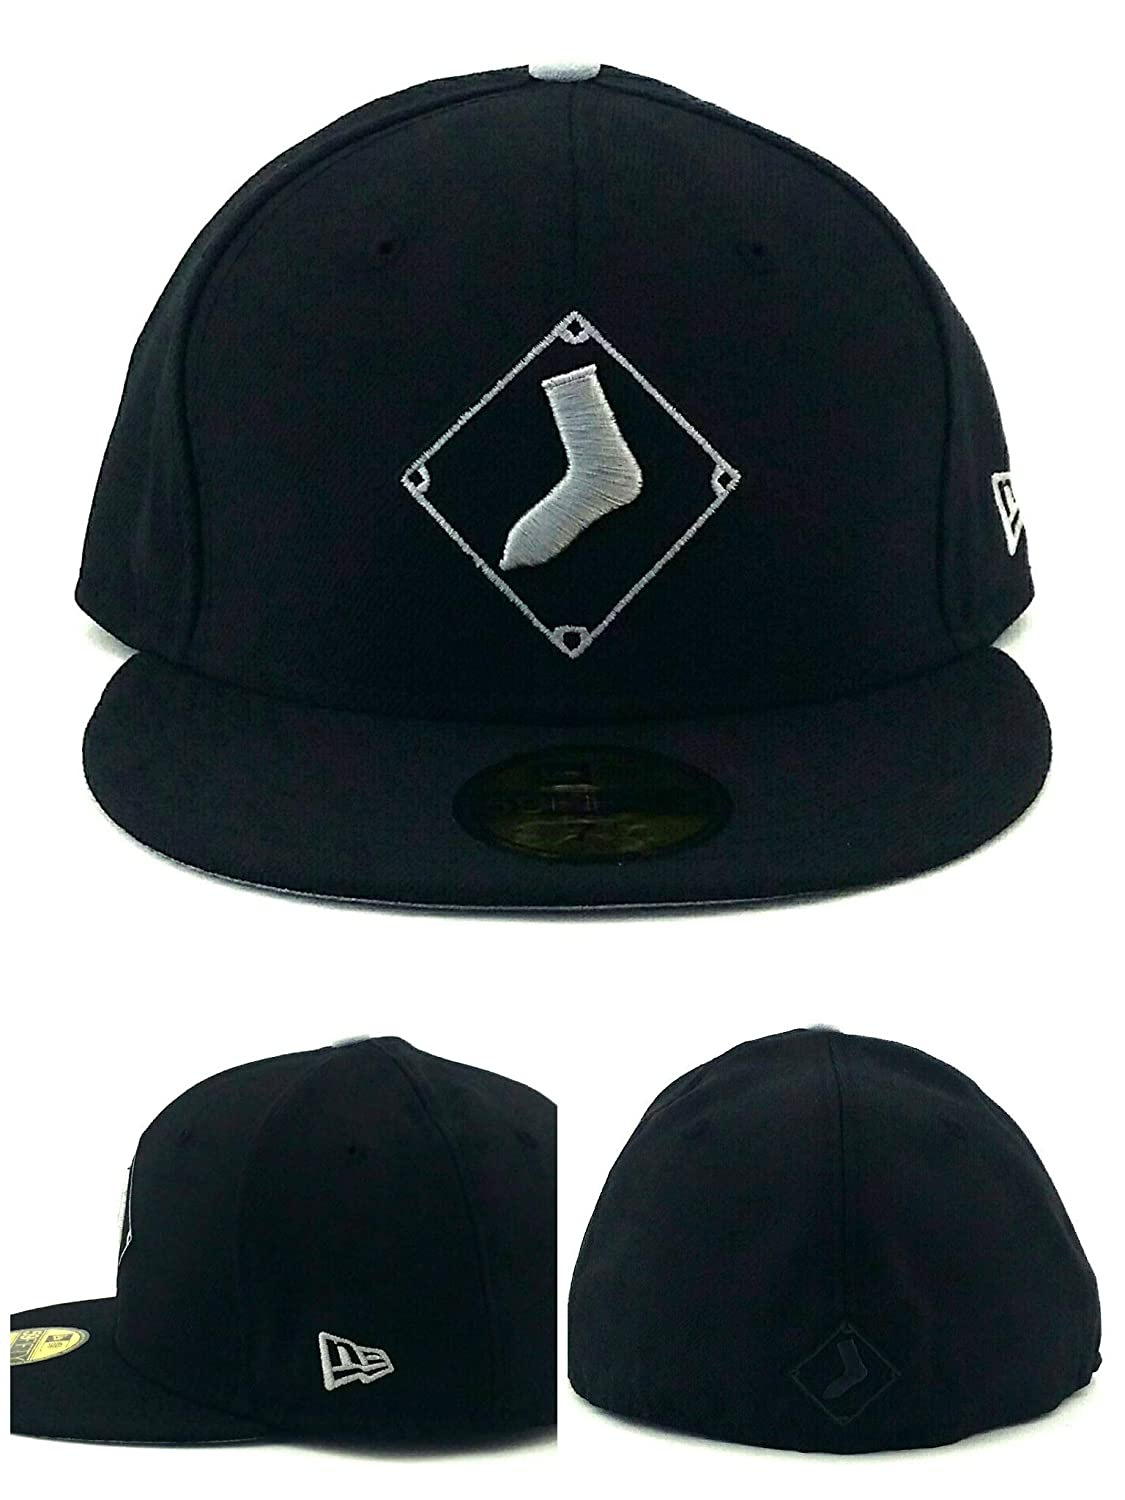 Amazon.com   New Era Chicago White Sox 59Fifty Black Gray Sock Diamond  Fitted Hat Cap 7 3 8   Sports   Outdoors af852c39f91